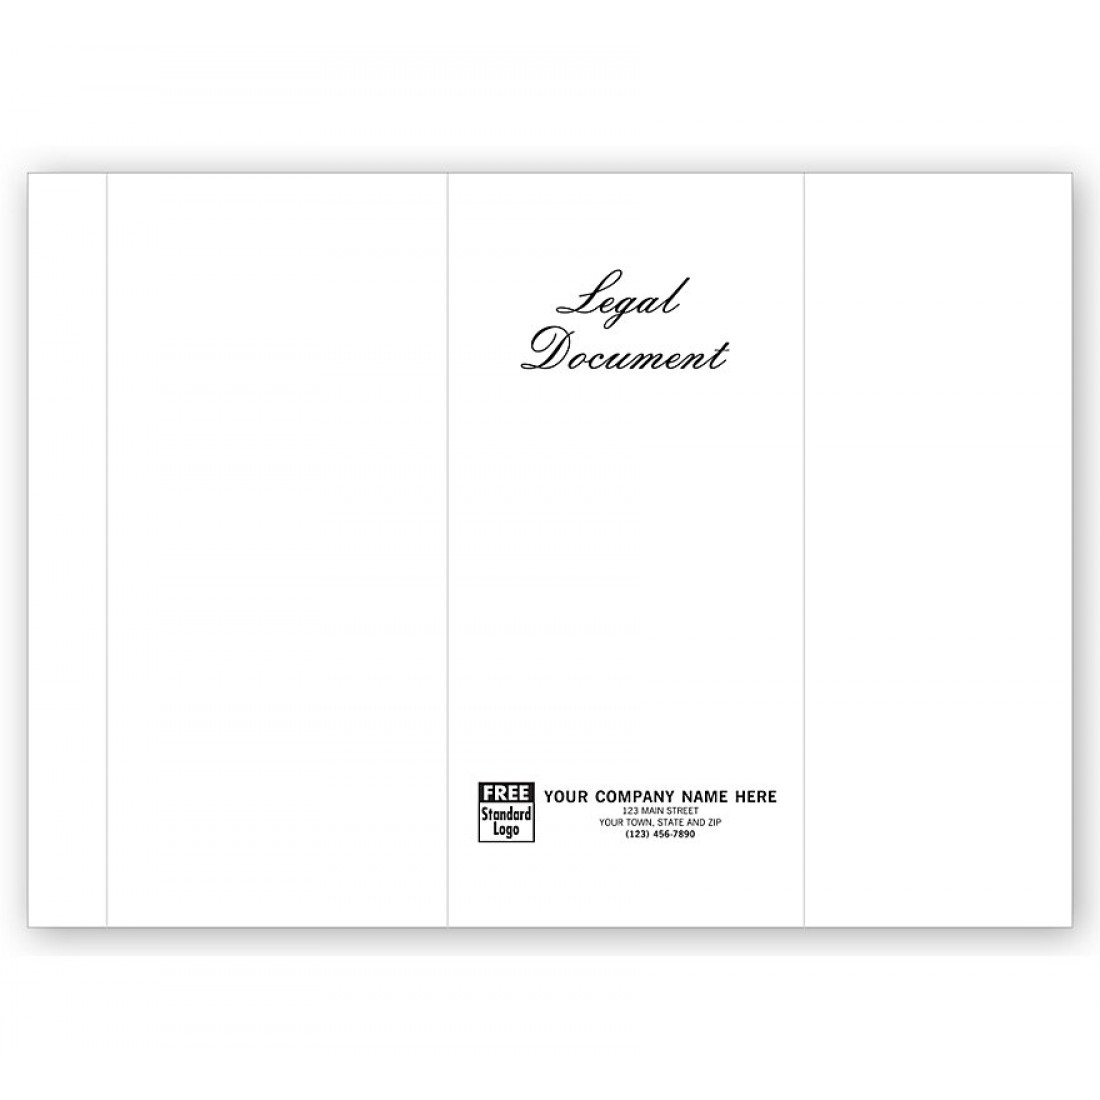 Engraved Legal Document Covers